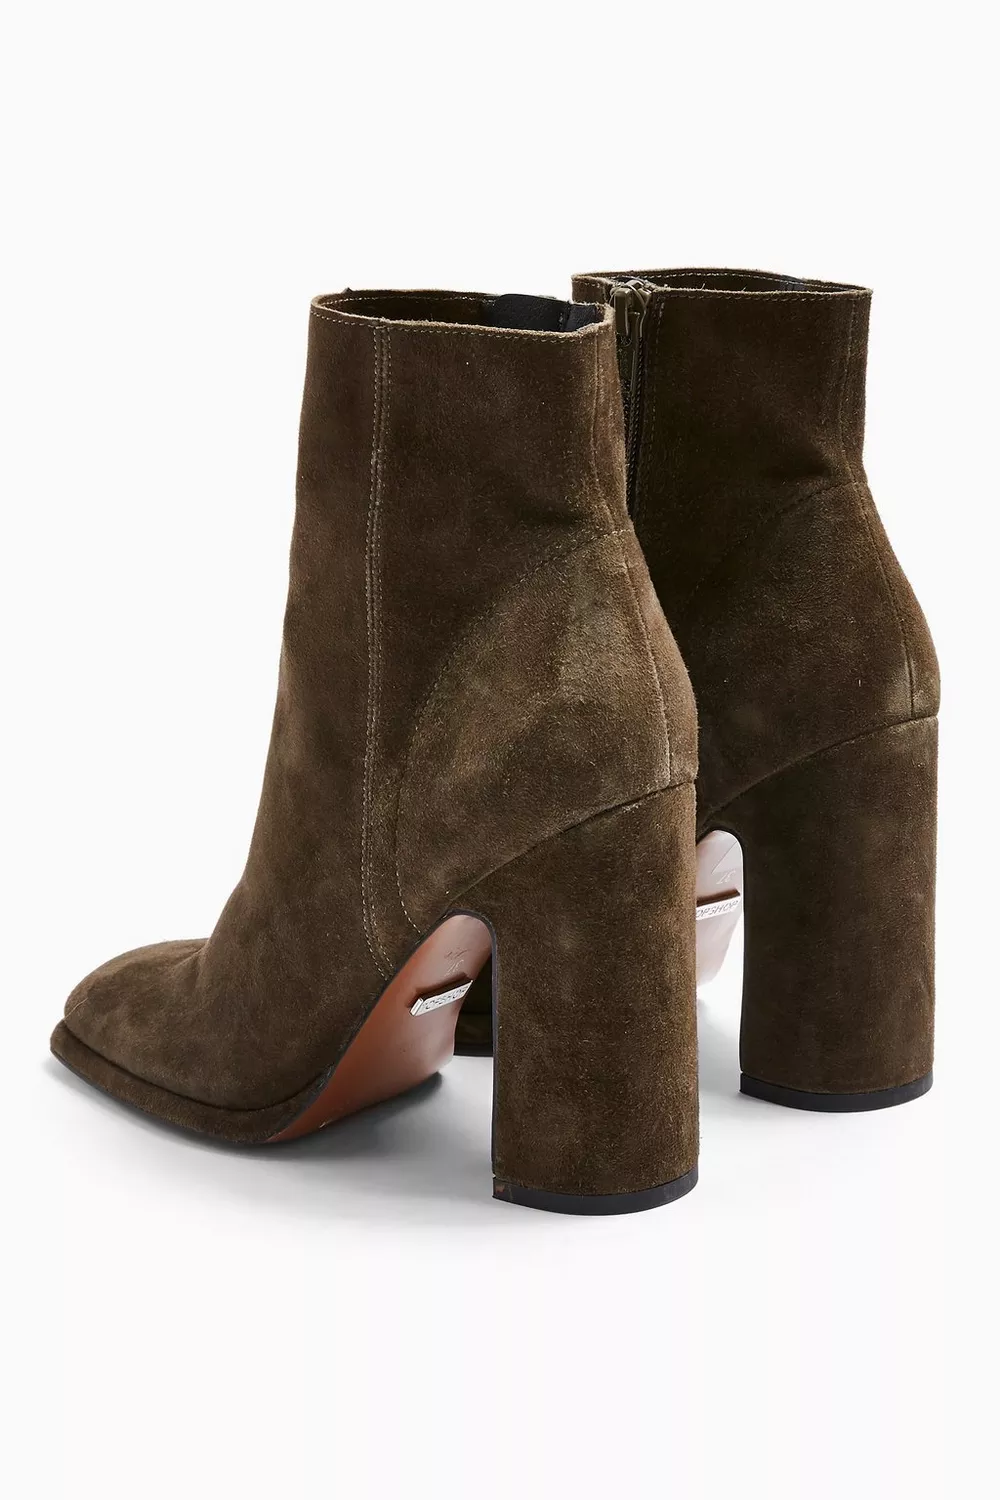 HOLDEN Leather Khaki Platform Boots | Platform high heels